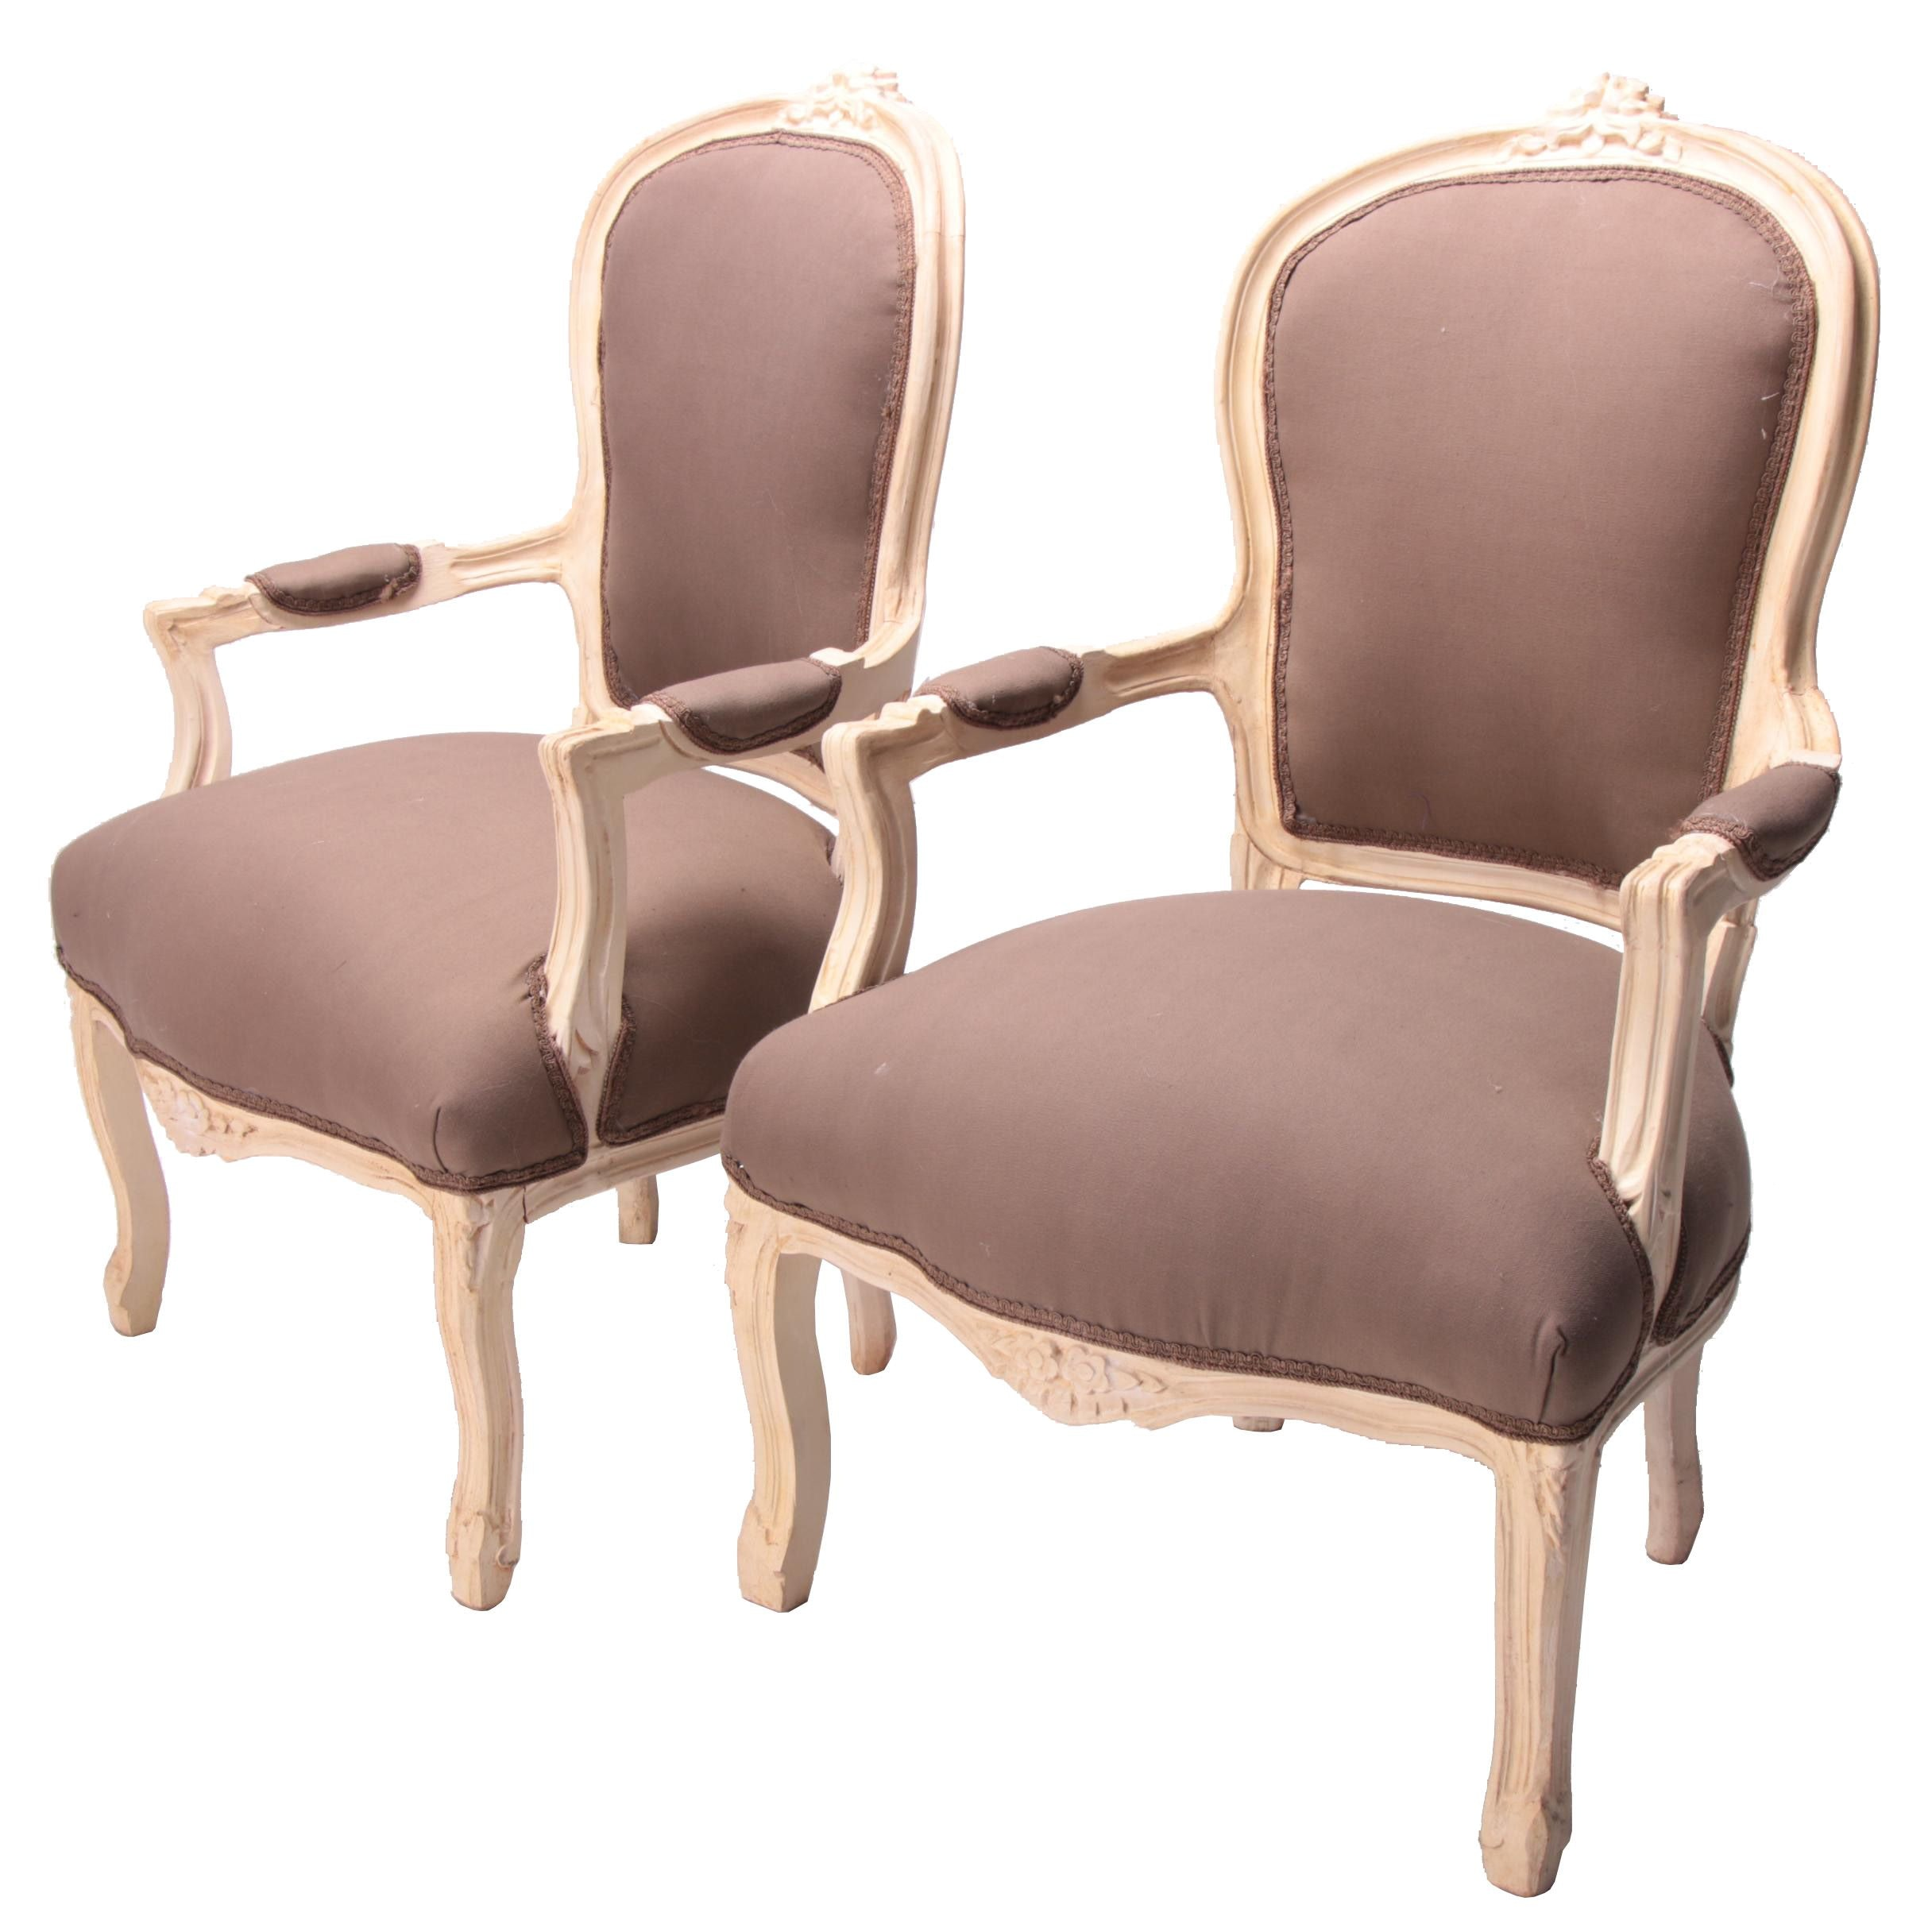 Pair of French Provincial Style Painted Wood Fauteuil a la Reines